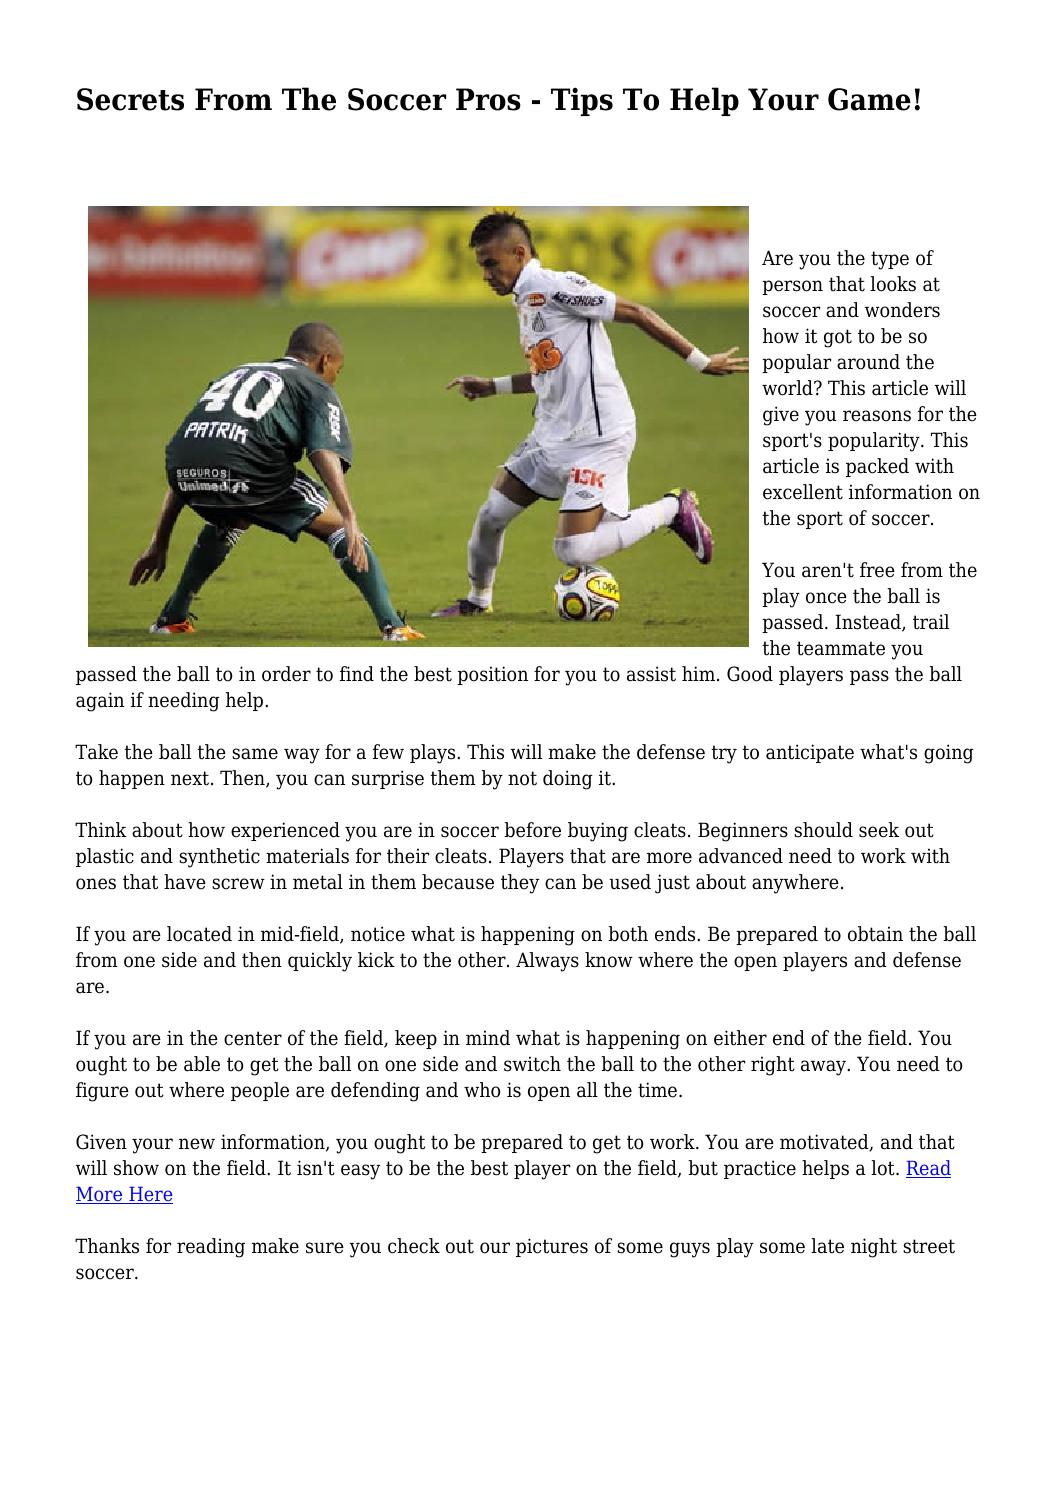 Secrets From The Soccer Pros - Tips To Help Your Game! by